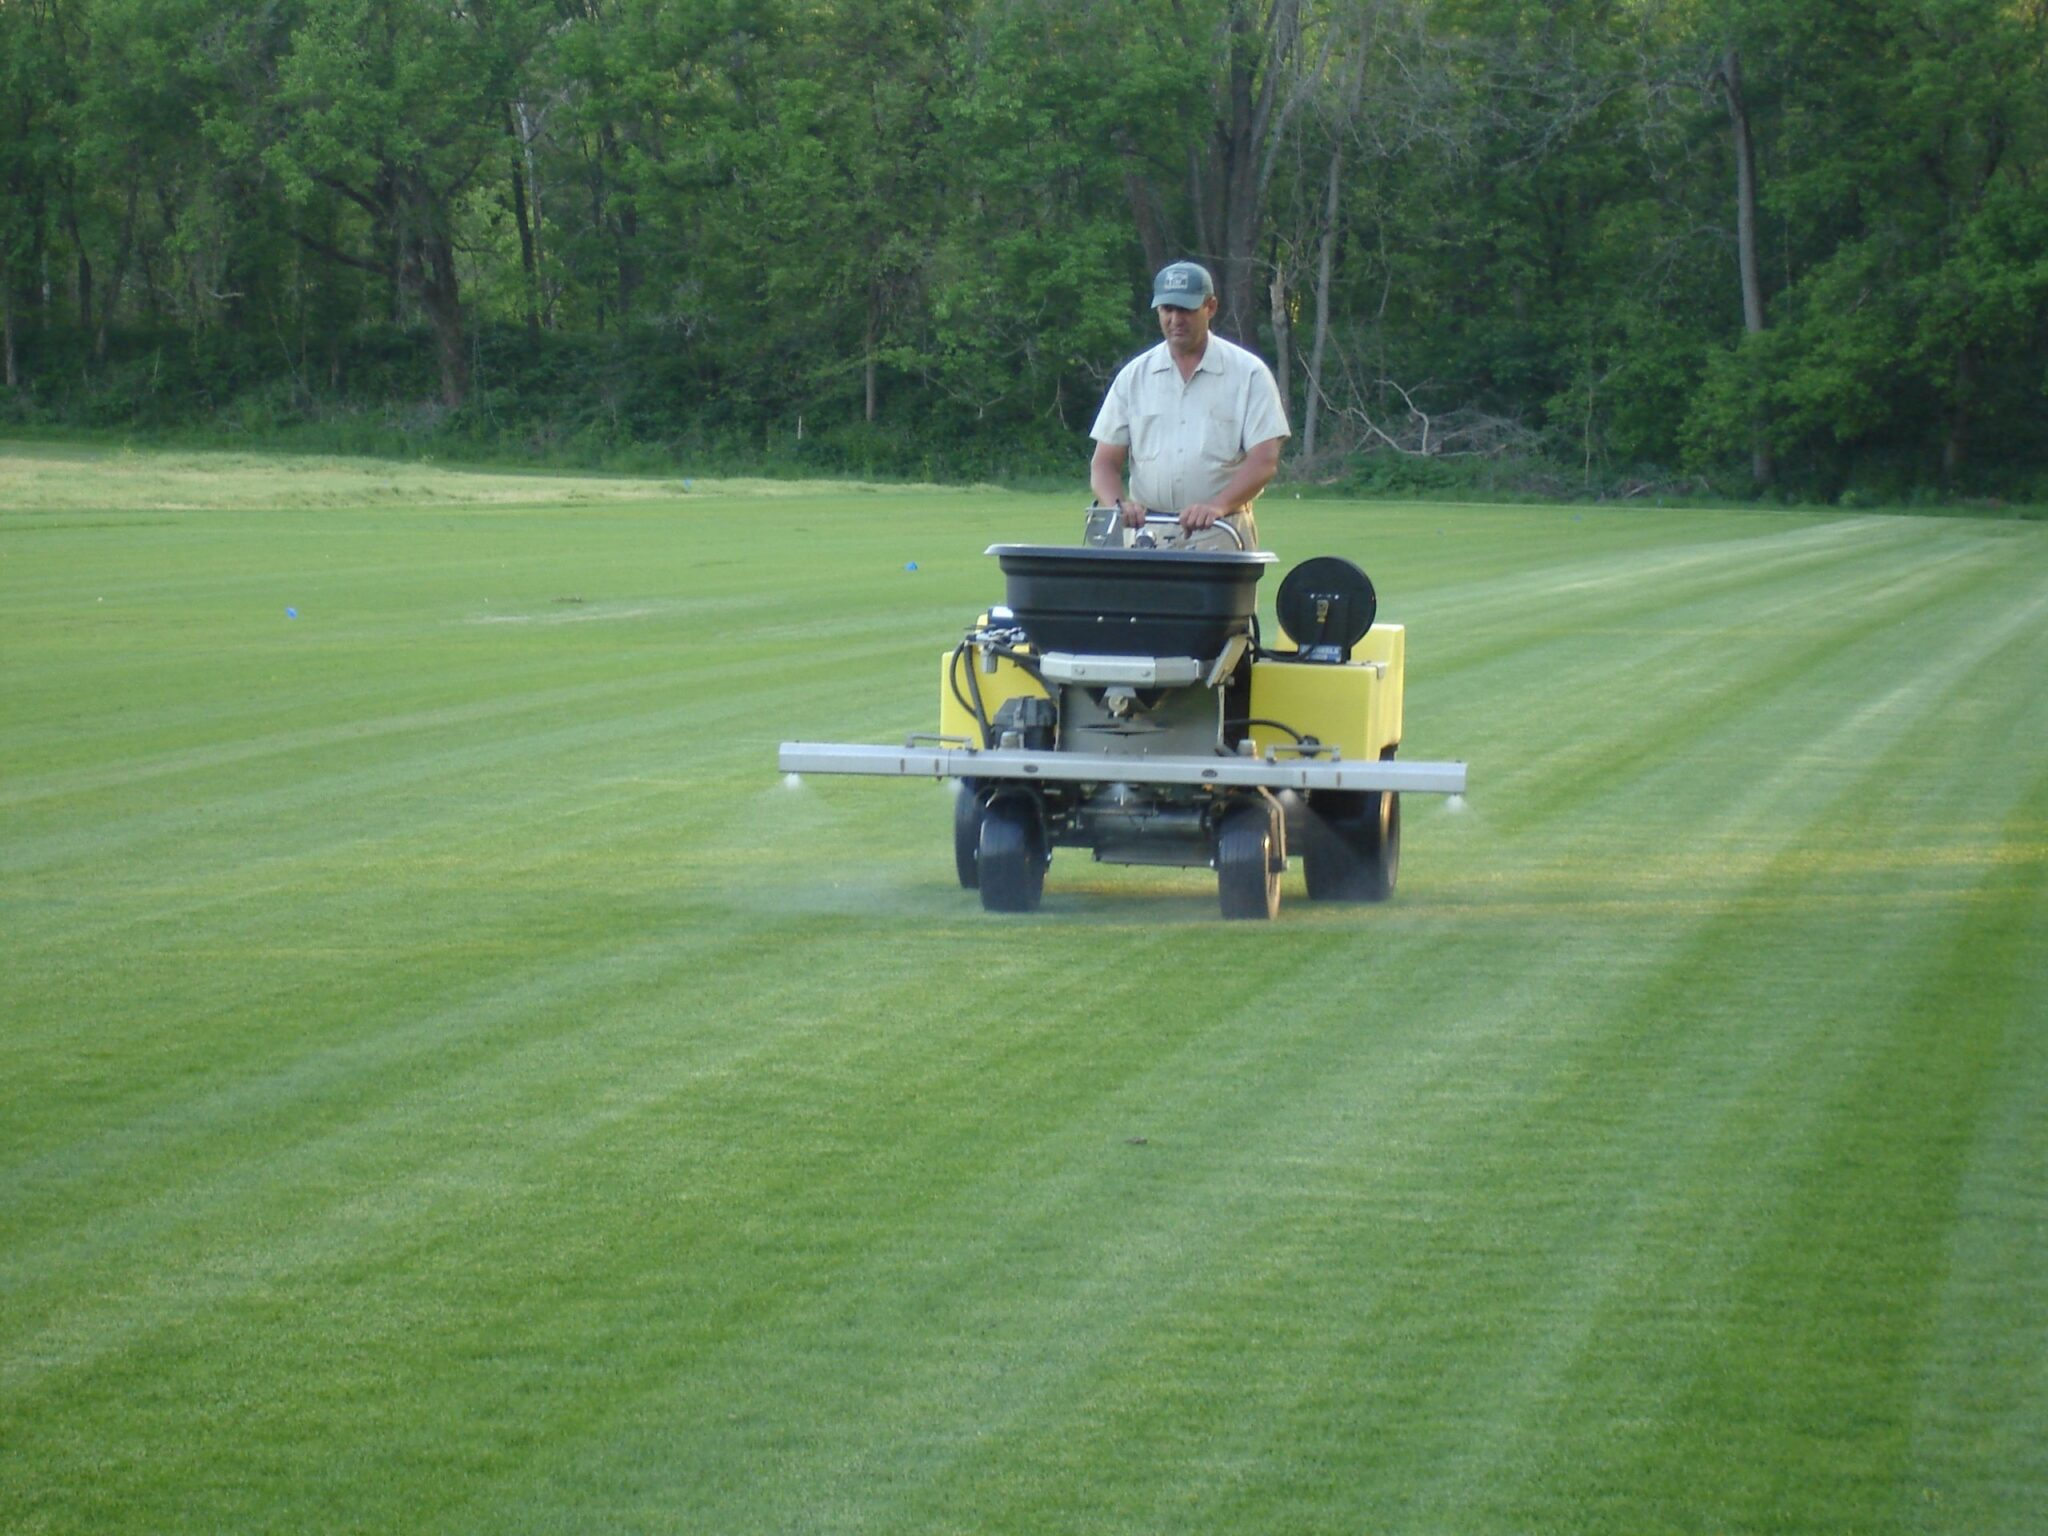 Lawn Care Picture of Gene at Sod field